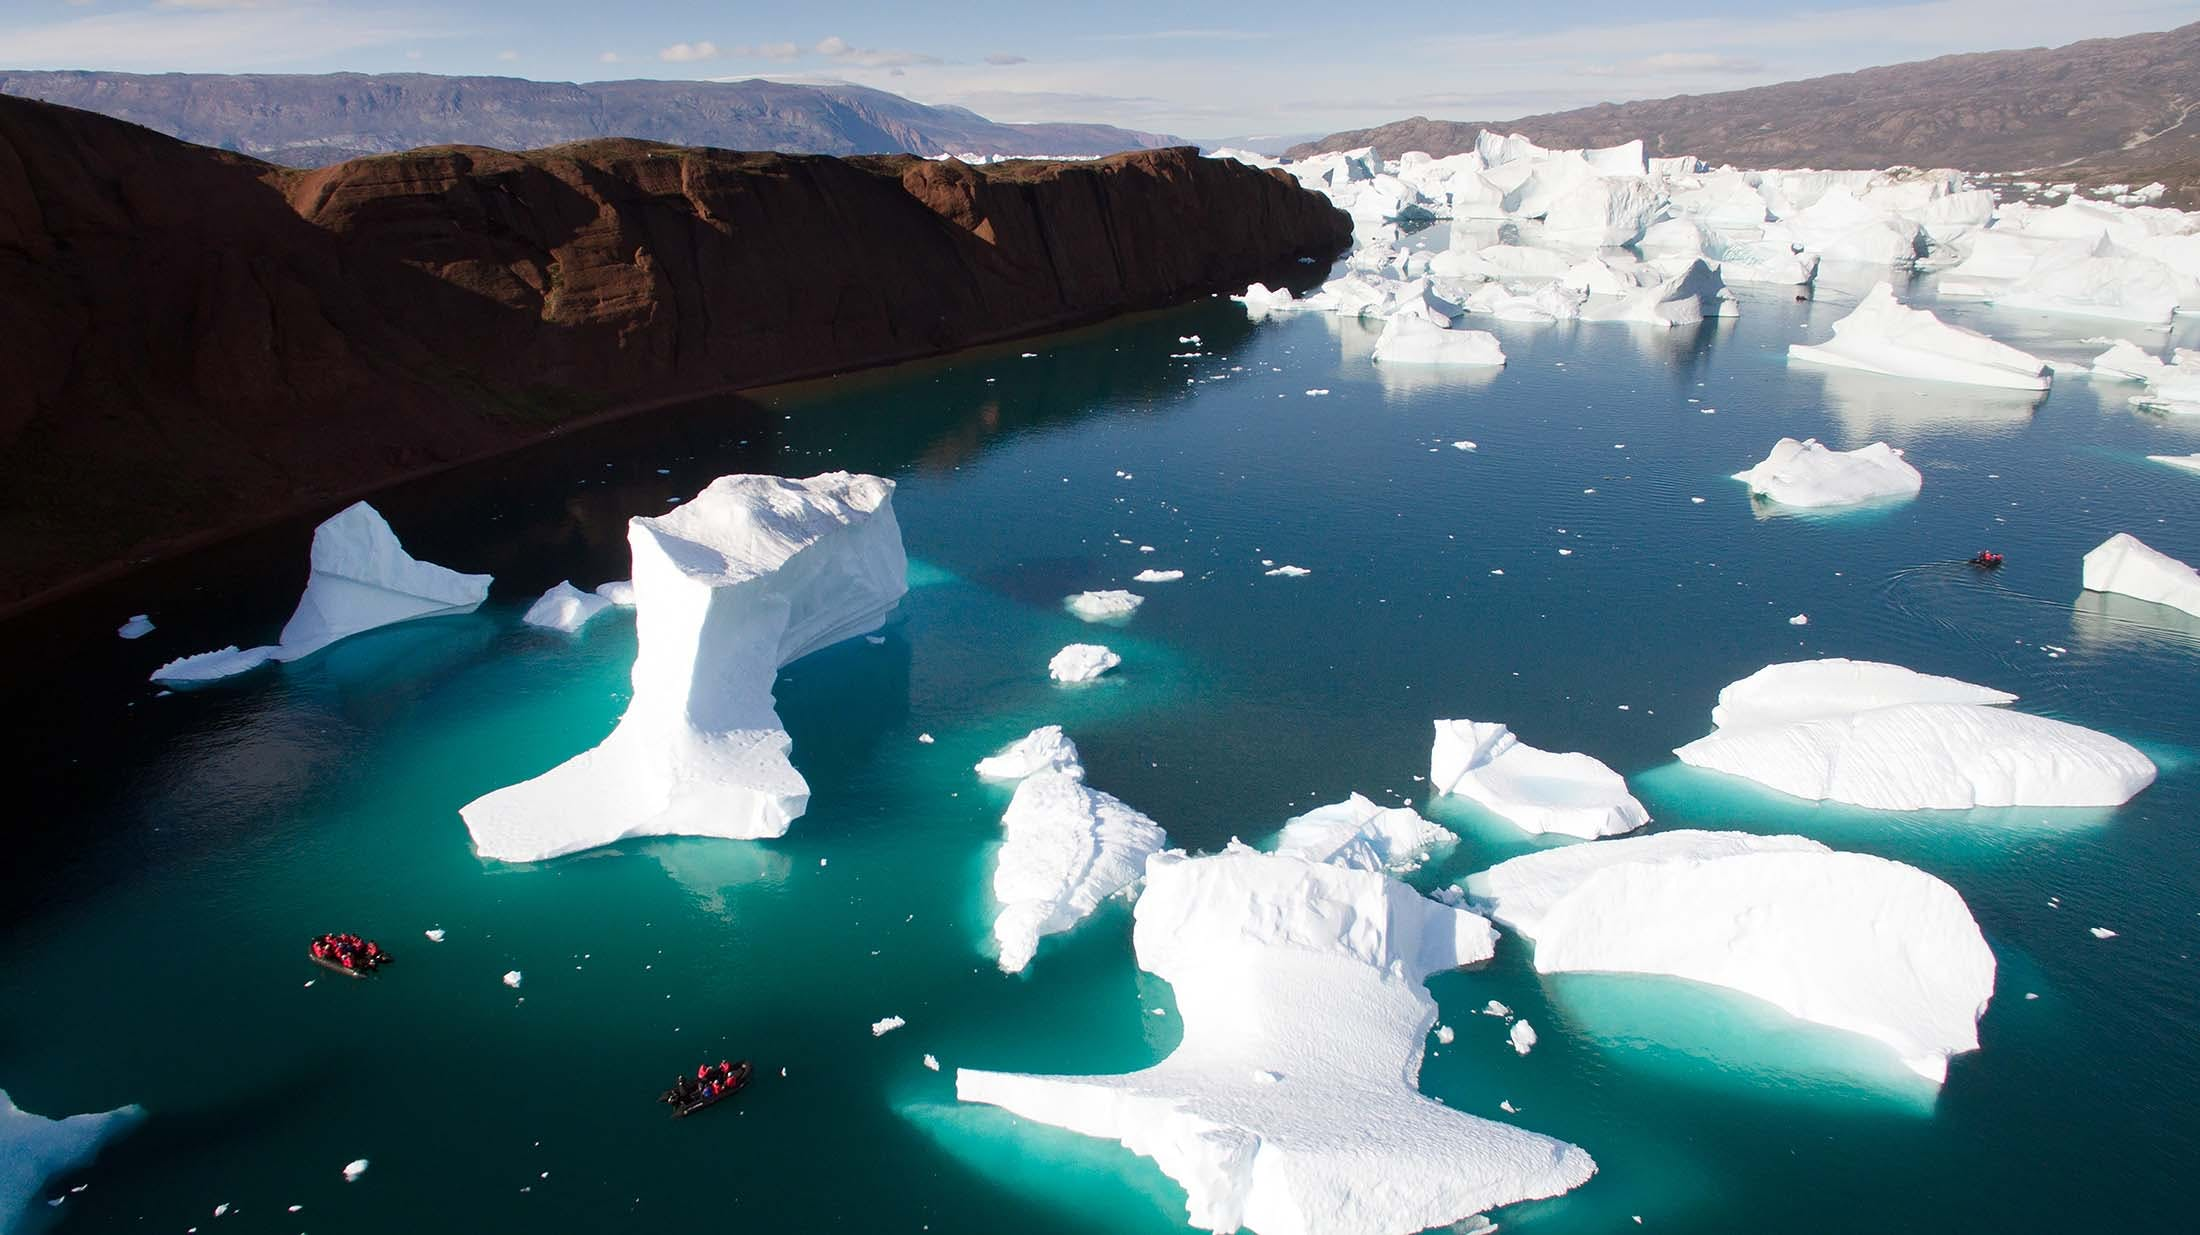 Arctic ice in Rode Fjord, Greenland